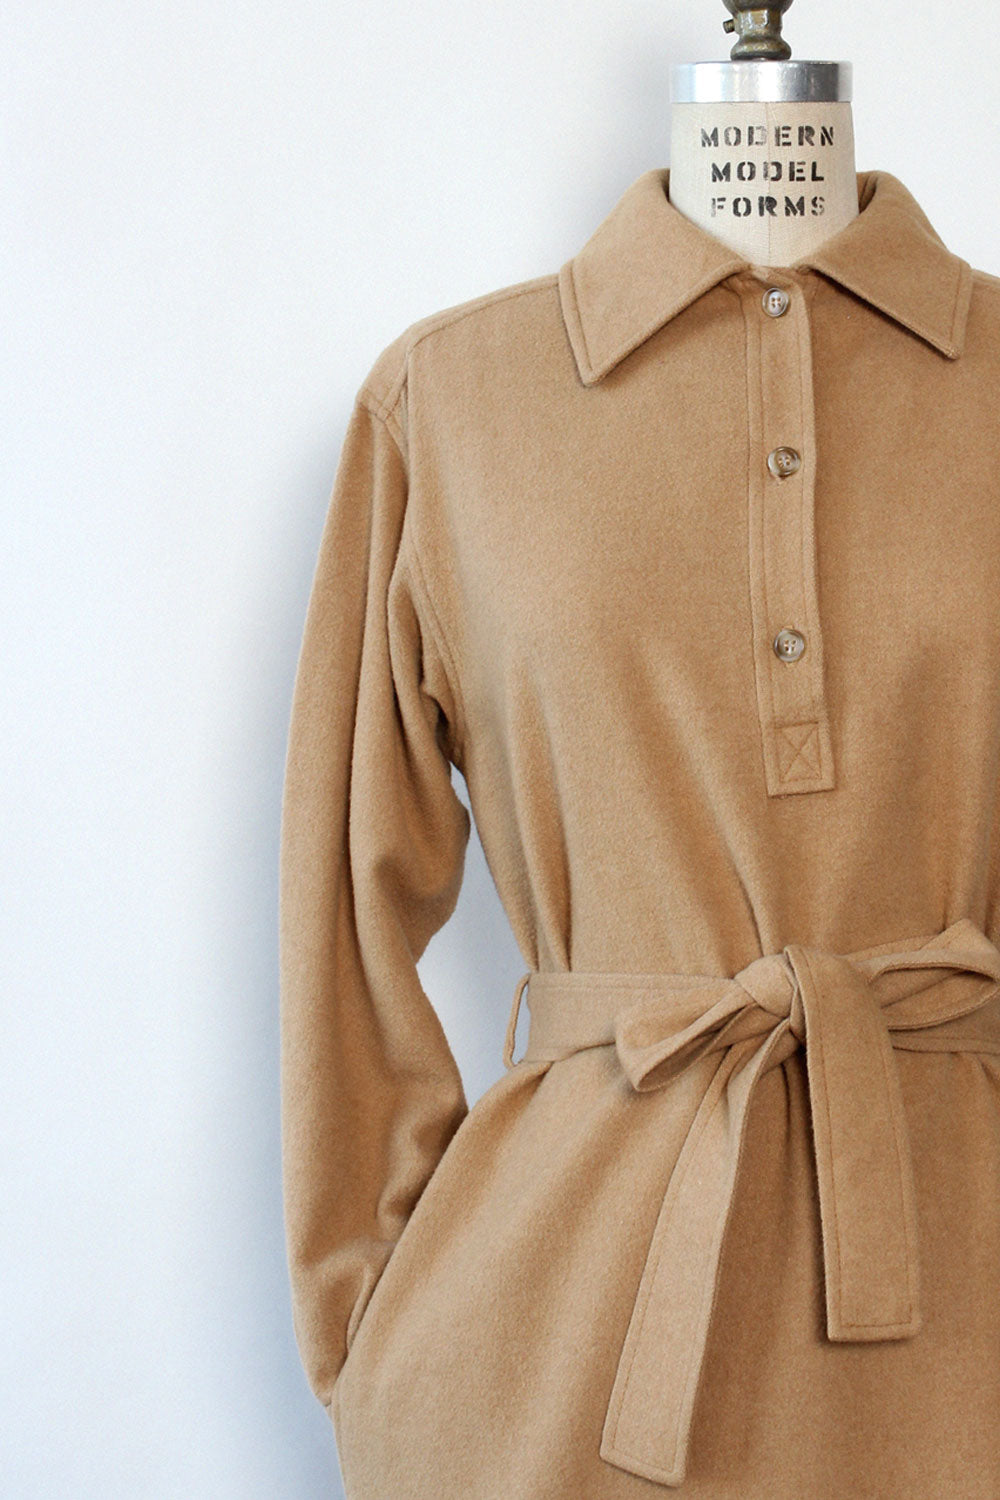 Camel Hair Belted Shirtdress M/L